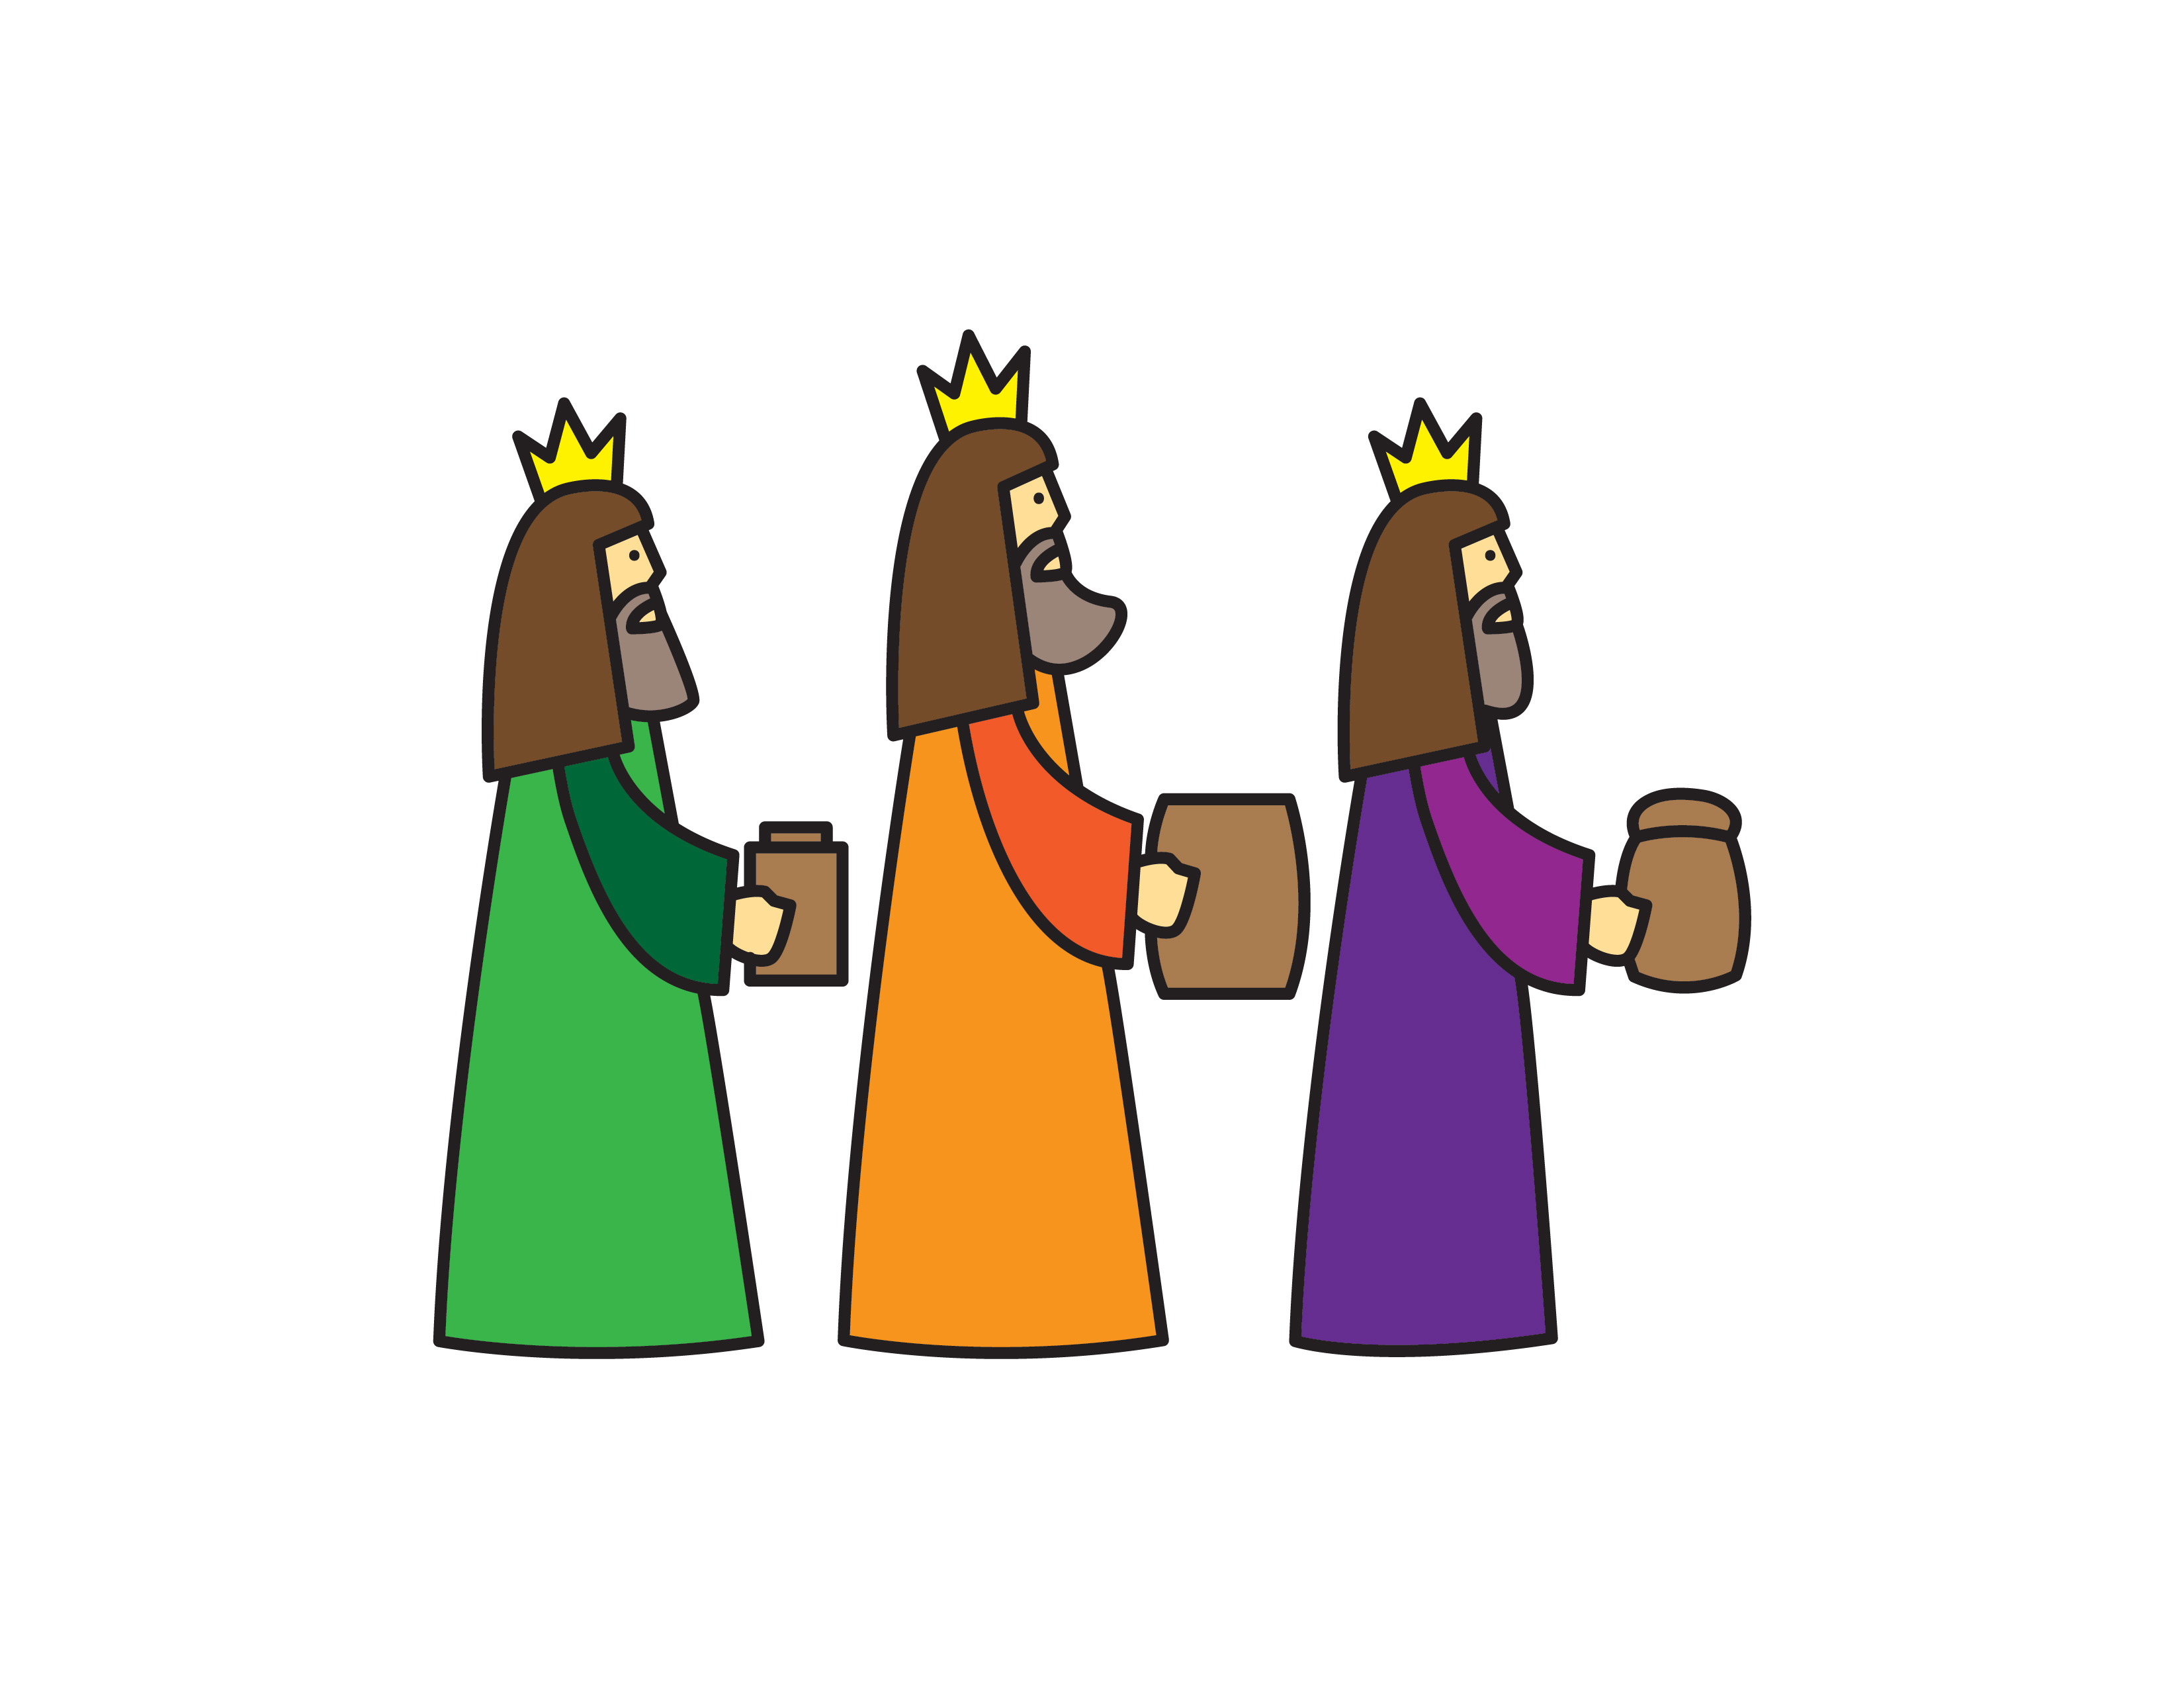 How To Draw 3 WISE MEN CHRISTIAN BIBLE By Step For Kids Easy Illustration Doodle Drawing GUID